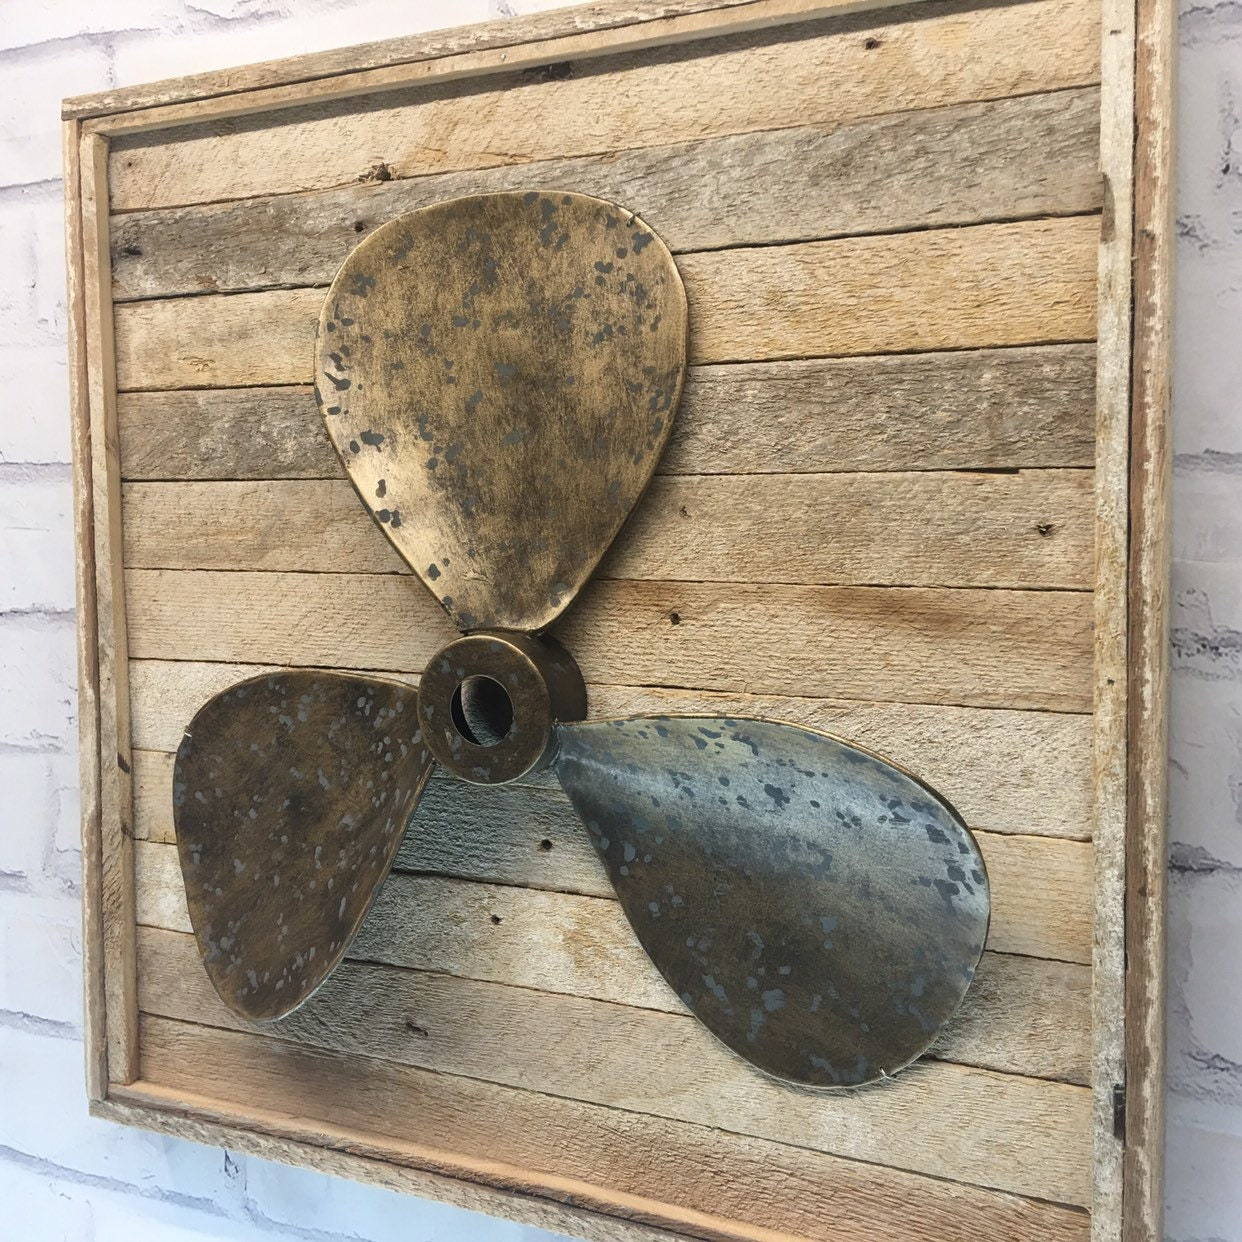 Rustic Metal Propeller Wall Decor Beach Decor Nautical Decor Beach House Rustic Propeller Rustic Beach Decor Wall Art Boating Decor